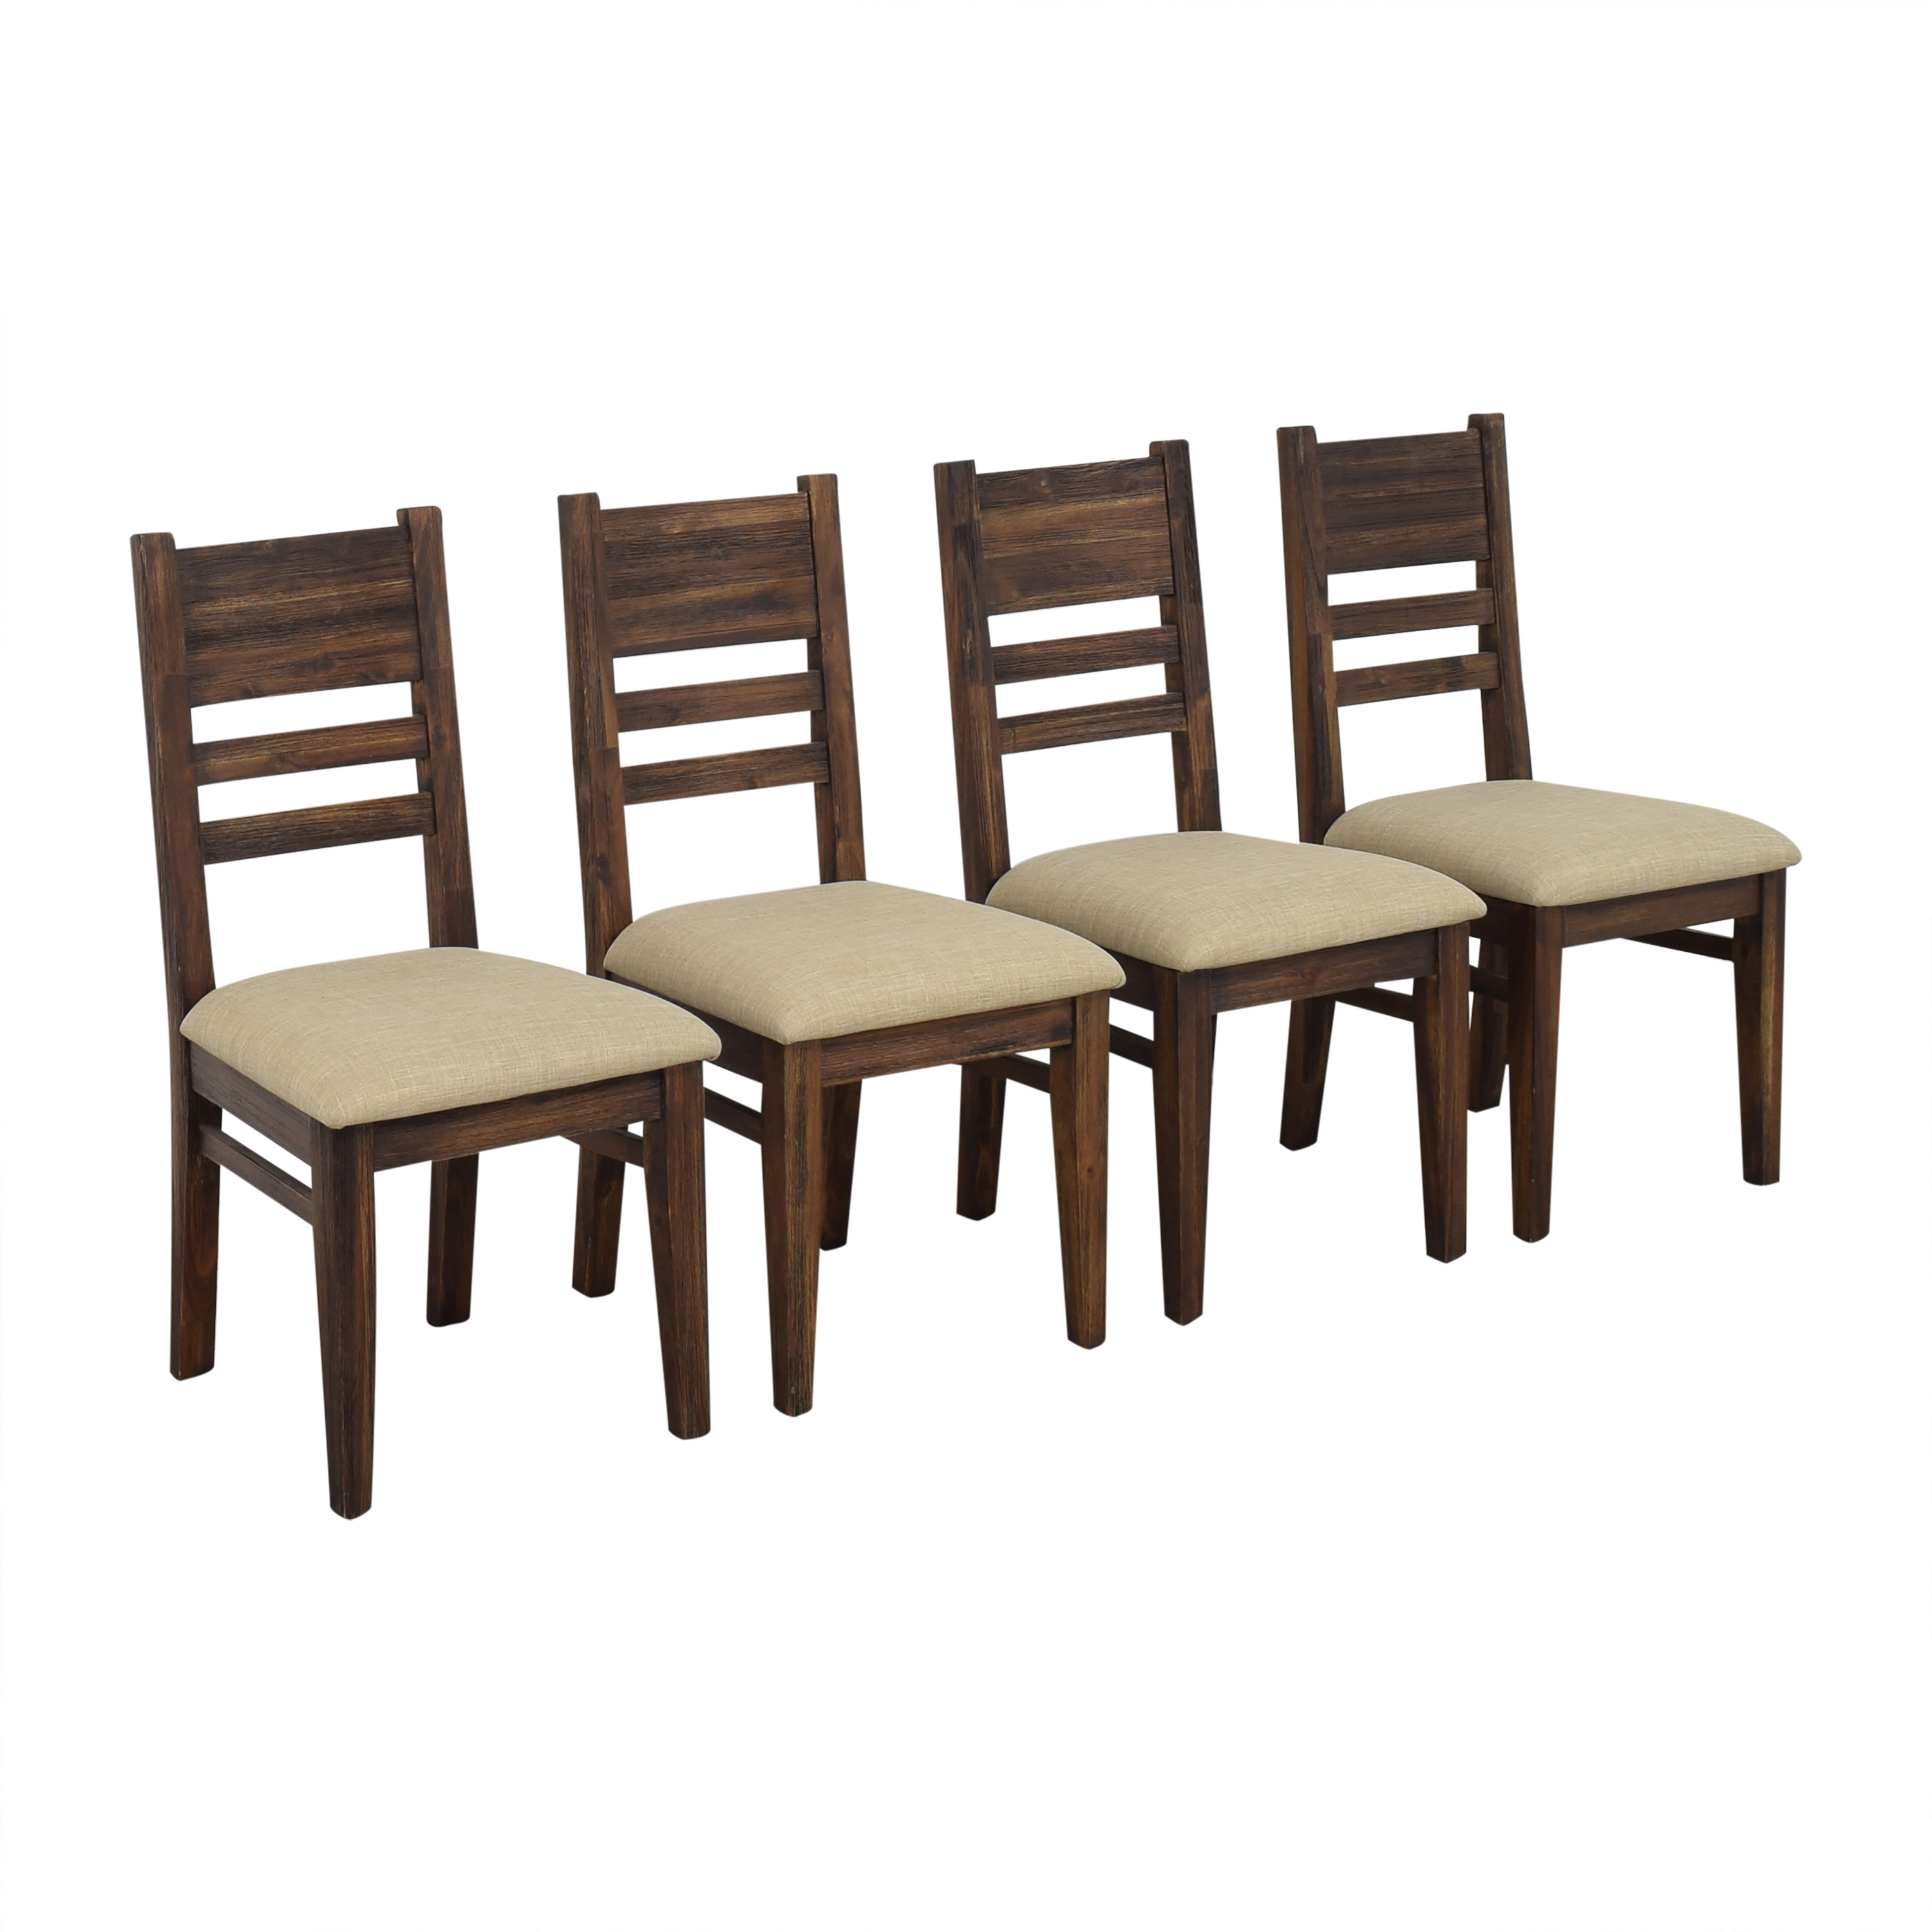 Macy's Macy's Avondale Dining Side Chairs ct